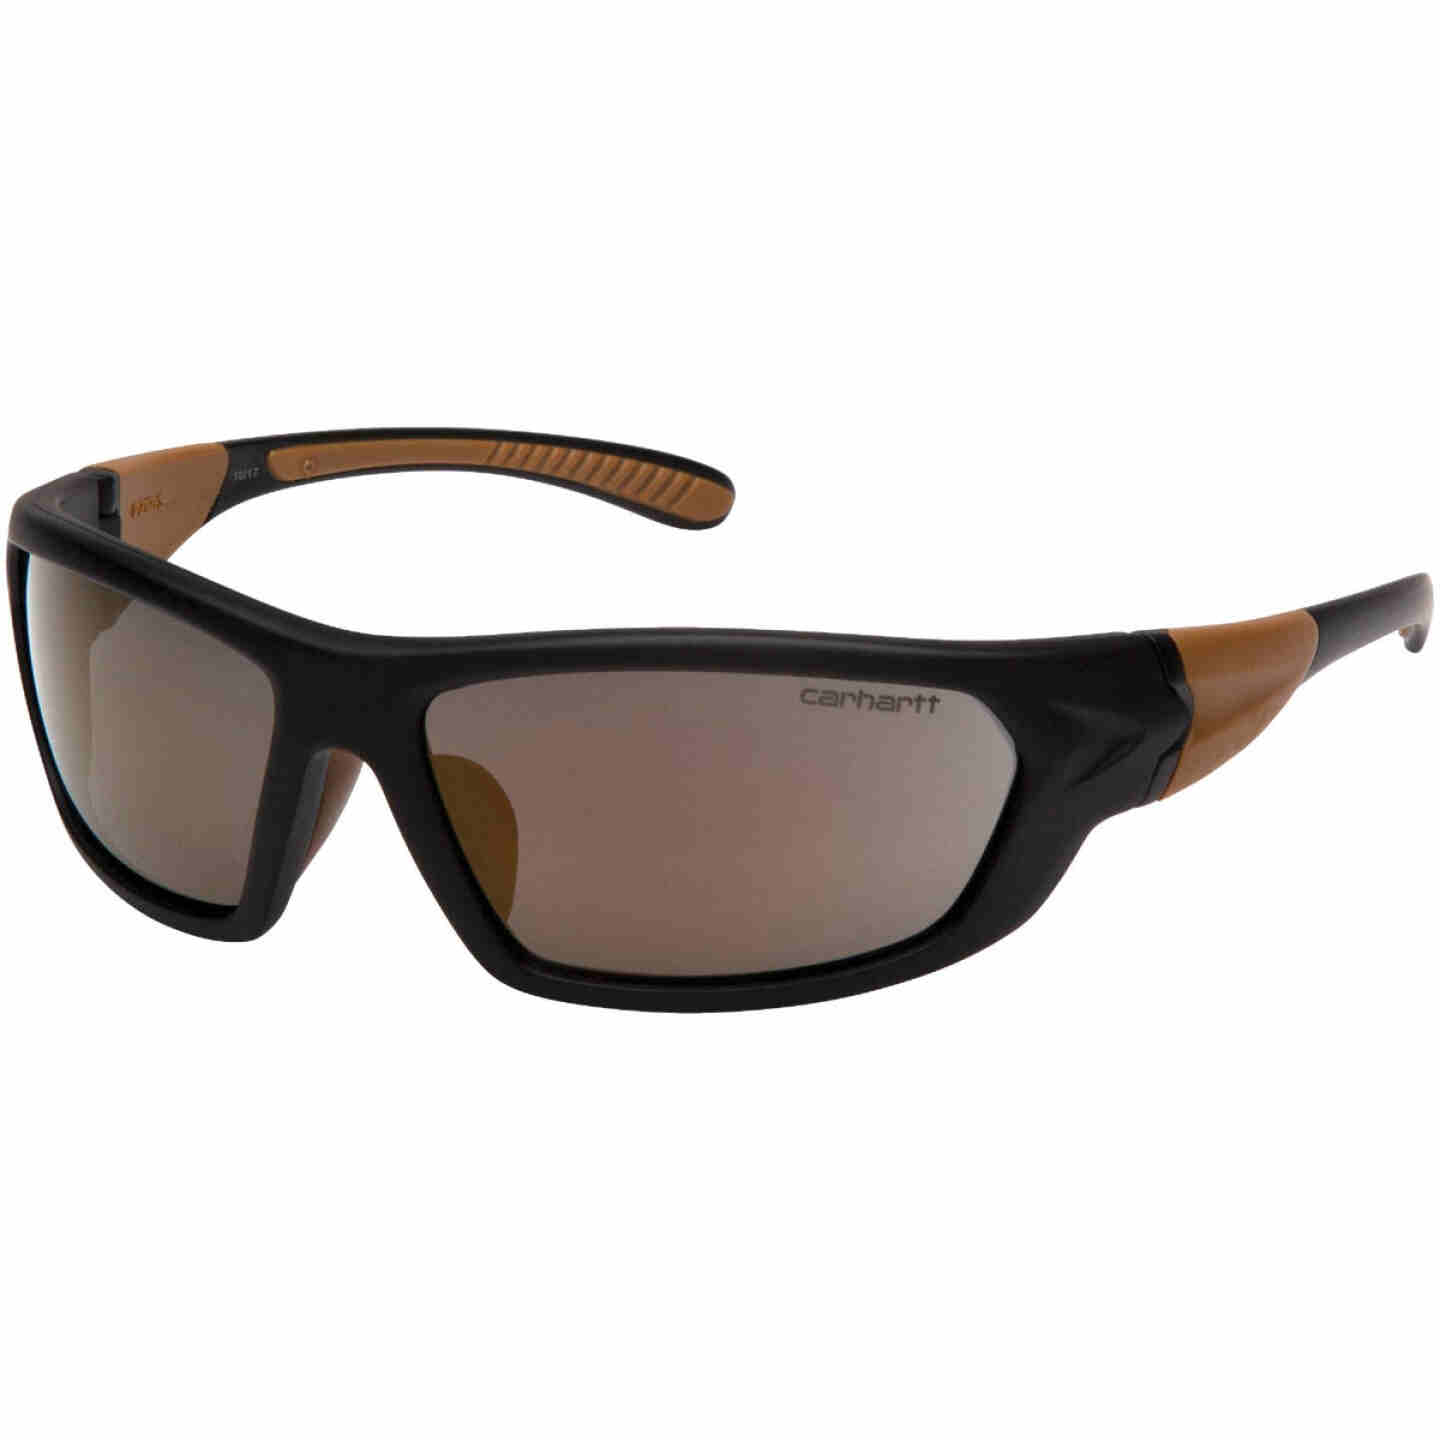 Carhartt Carbondale Black & Tan Frame Safety Glasses with Antique Mirror Lenses Image 1